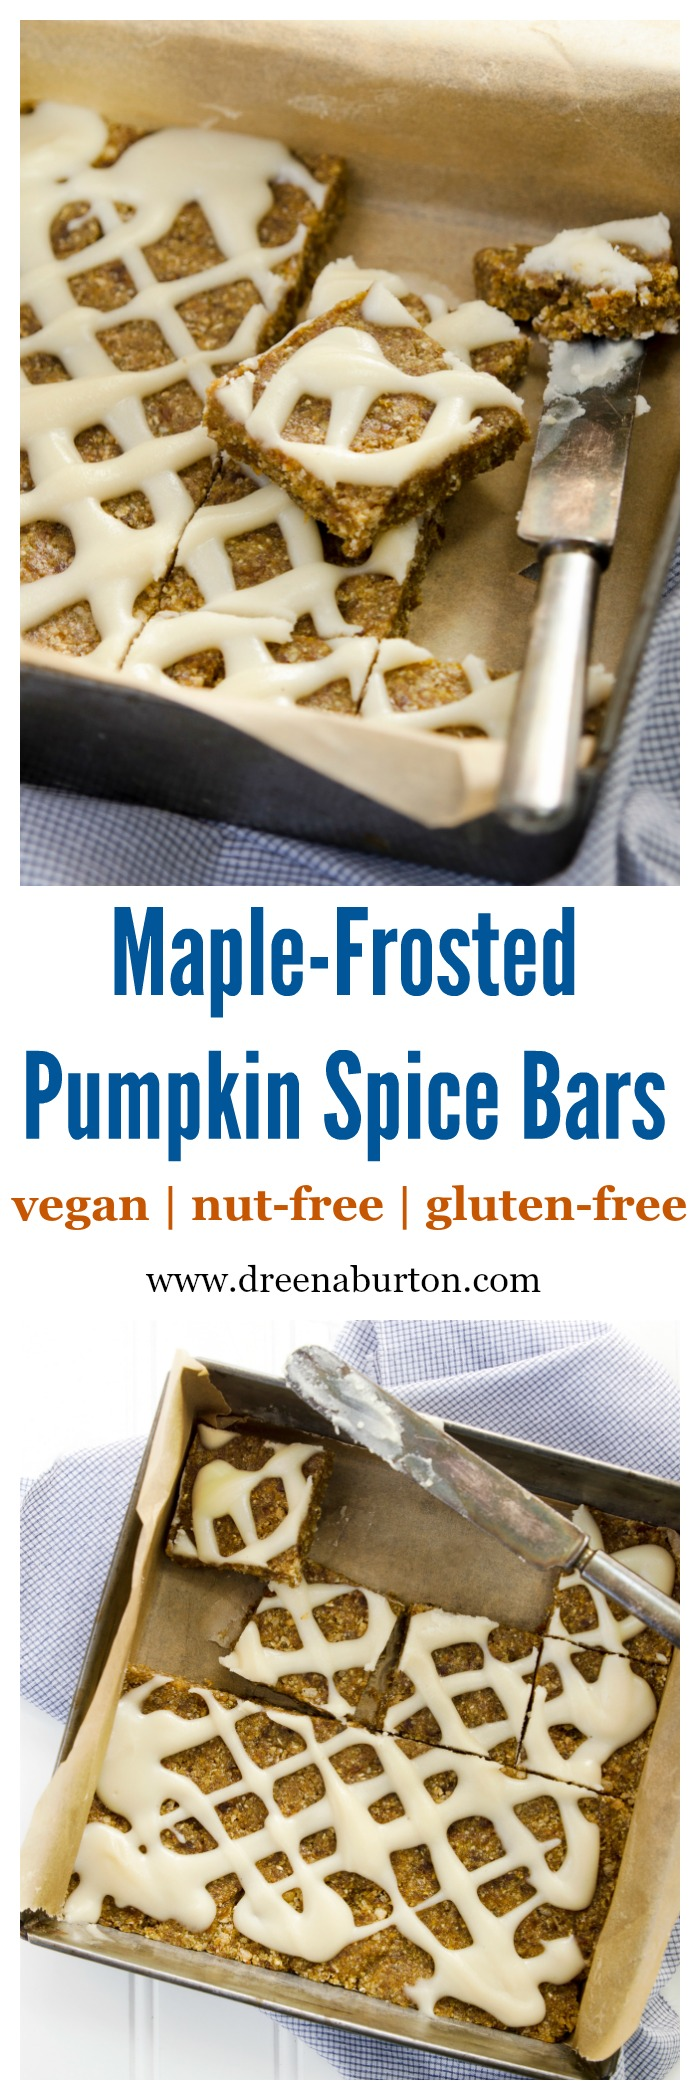 Maple-Frosted Pumpkin Spice Bars